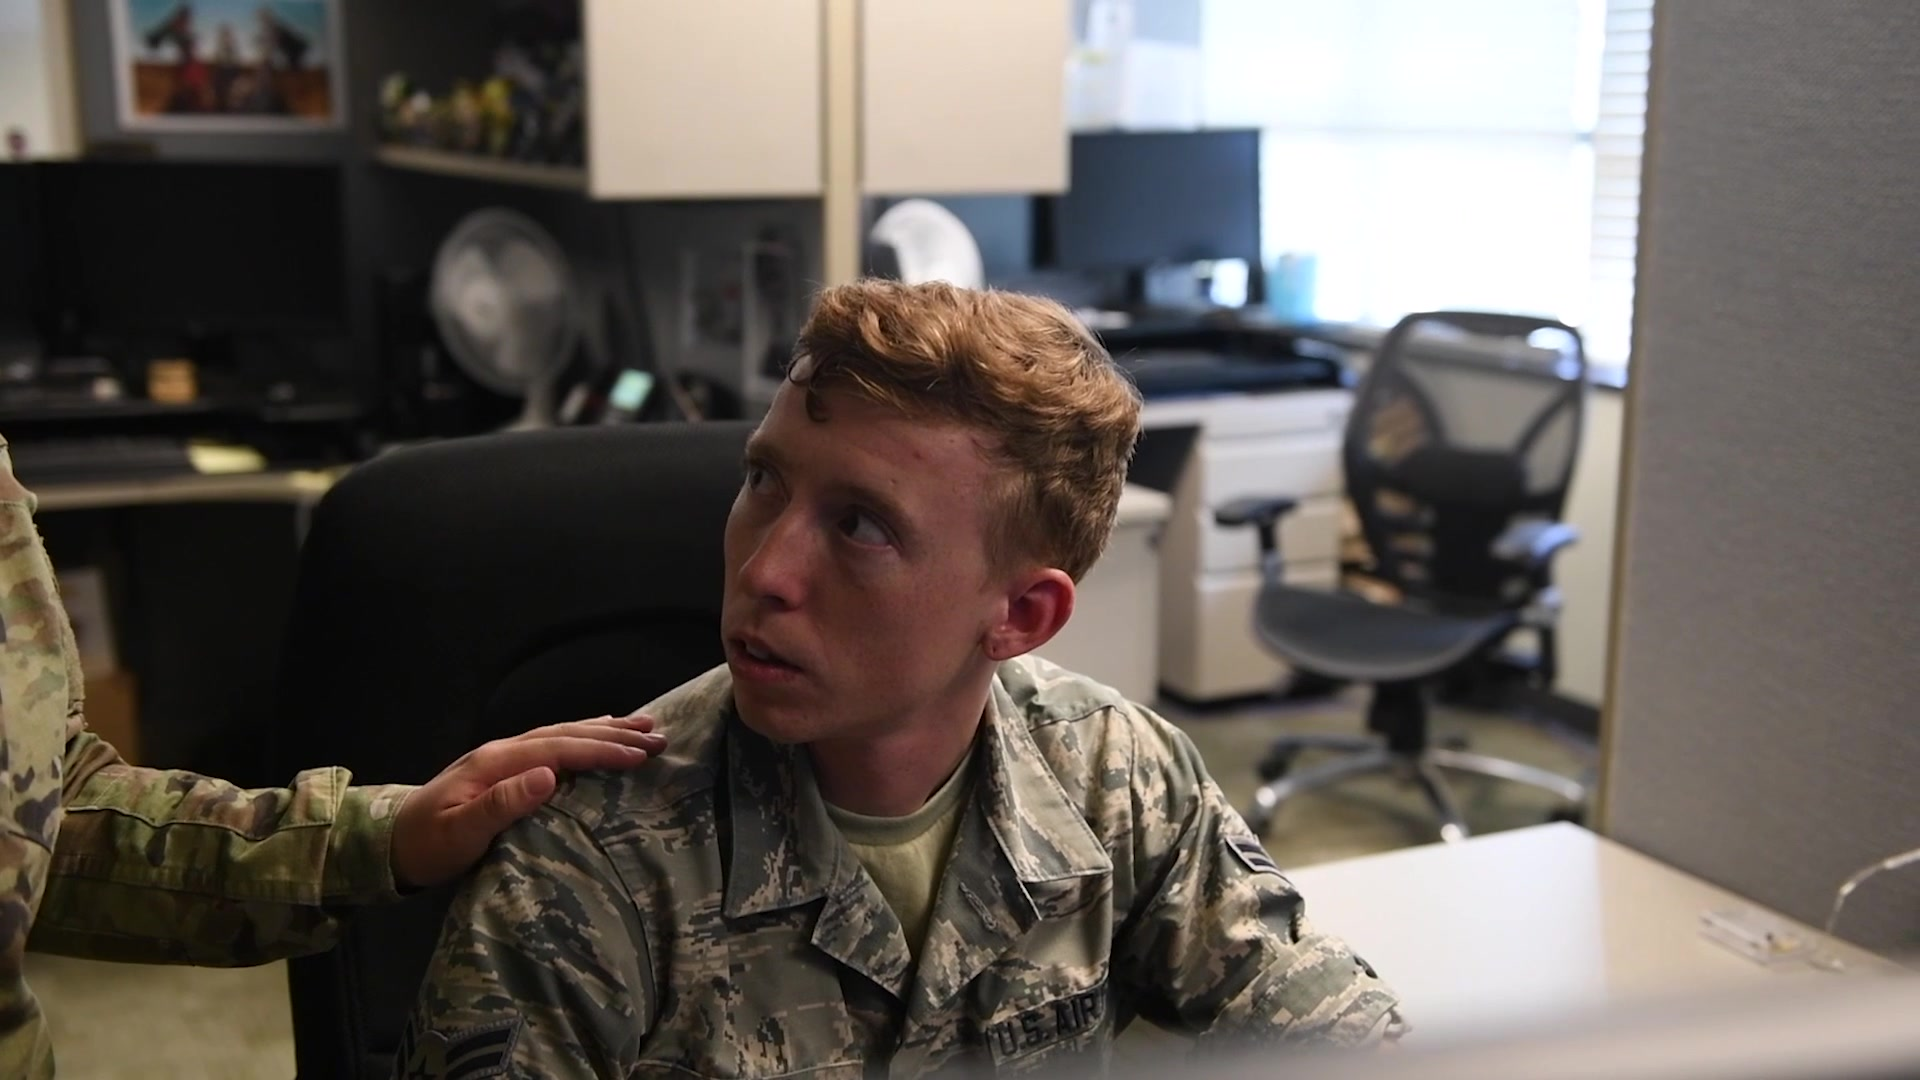 Suicide prevention awareness video highlighting Airman's personal struggle and reminding us to look for depression signs in happy outgoing friends as well as ones who seem down.